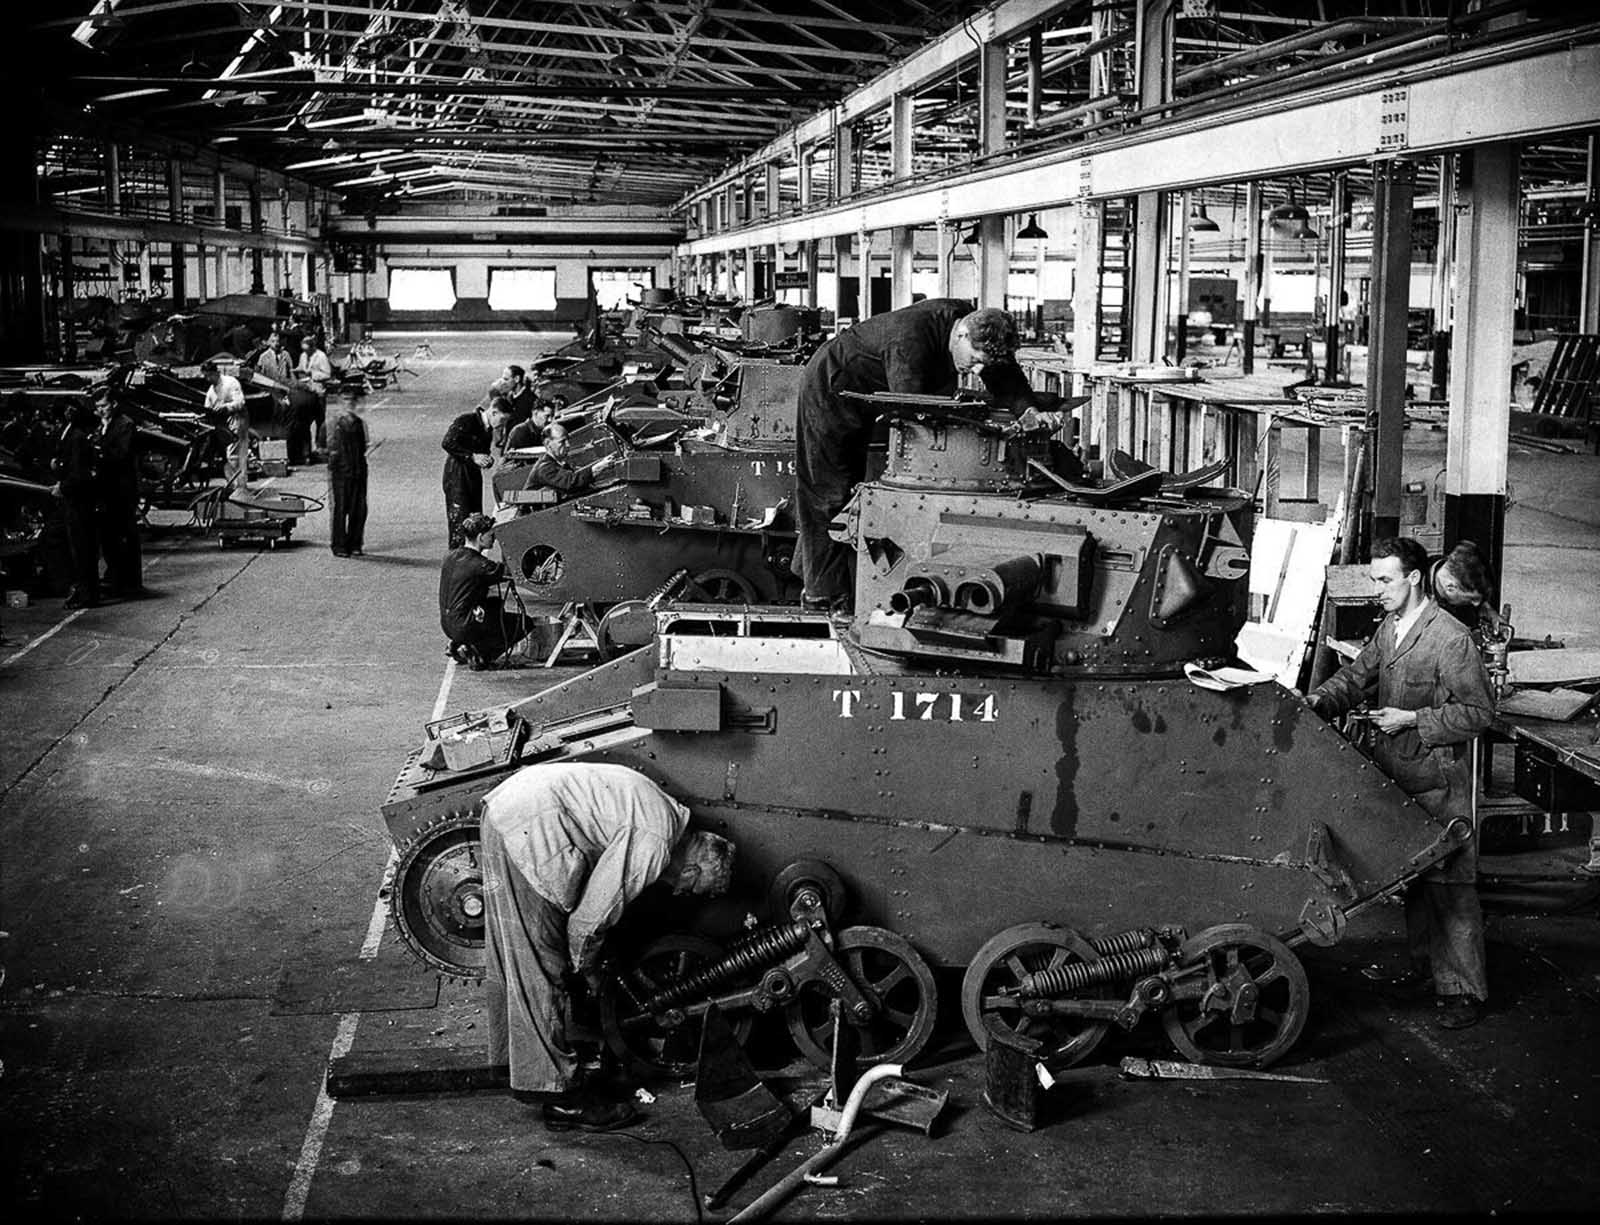 British tanks on an assembly line. Some of the tanks are being repaired following the evacuation of Dunkirk. 1940.